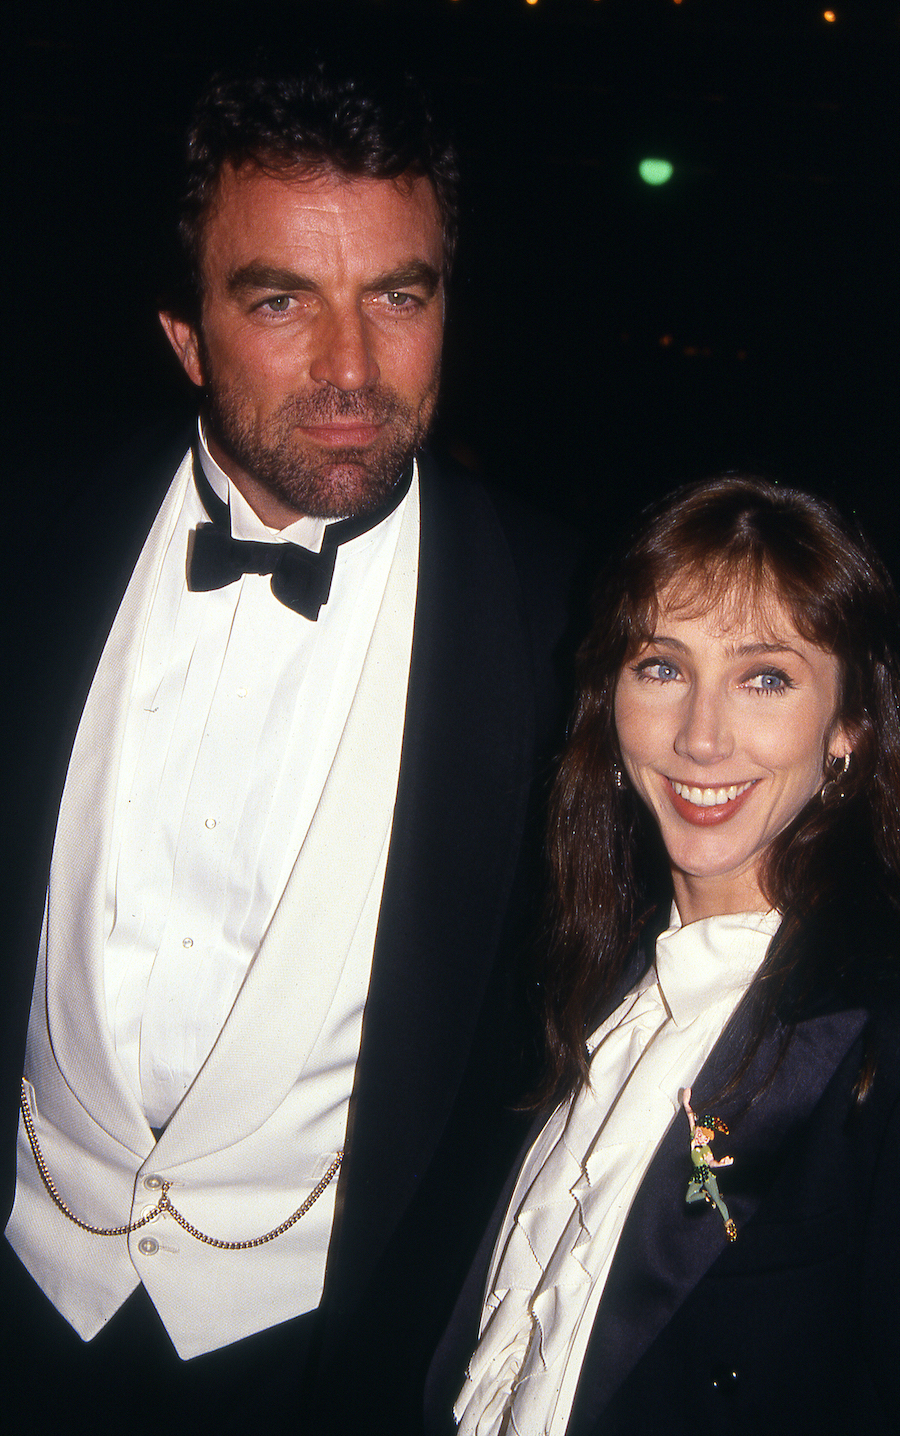 Tom Selleck Shares Secret Behind 33 Years of Happy Marriage to Wife Jillie